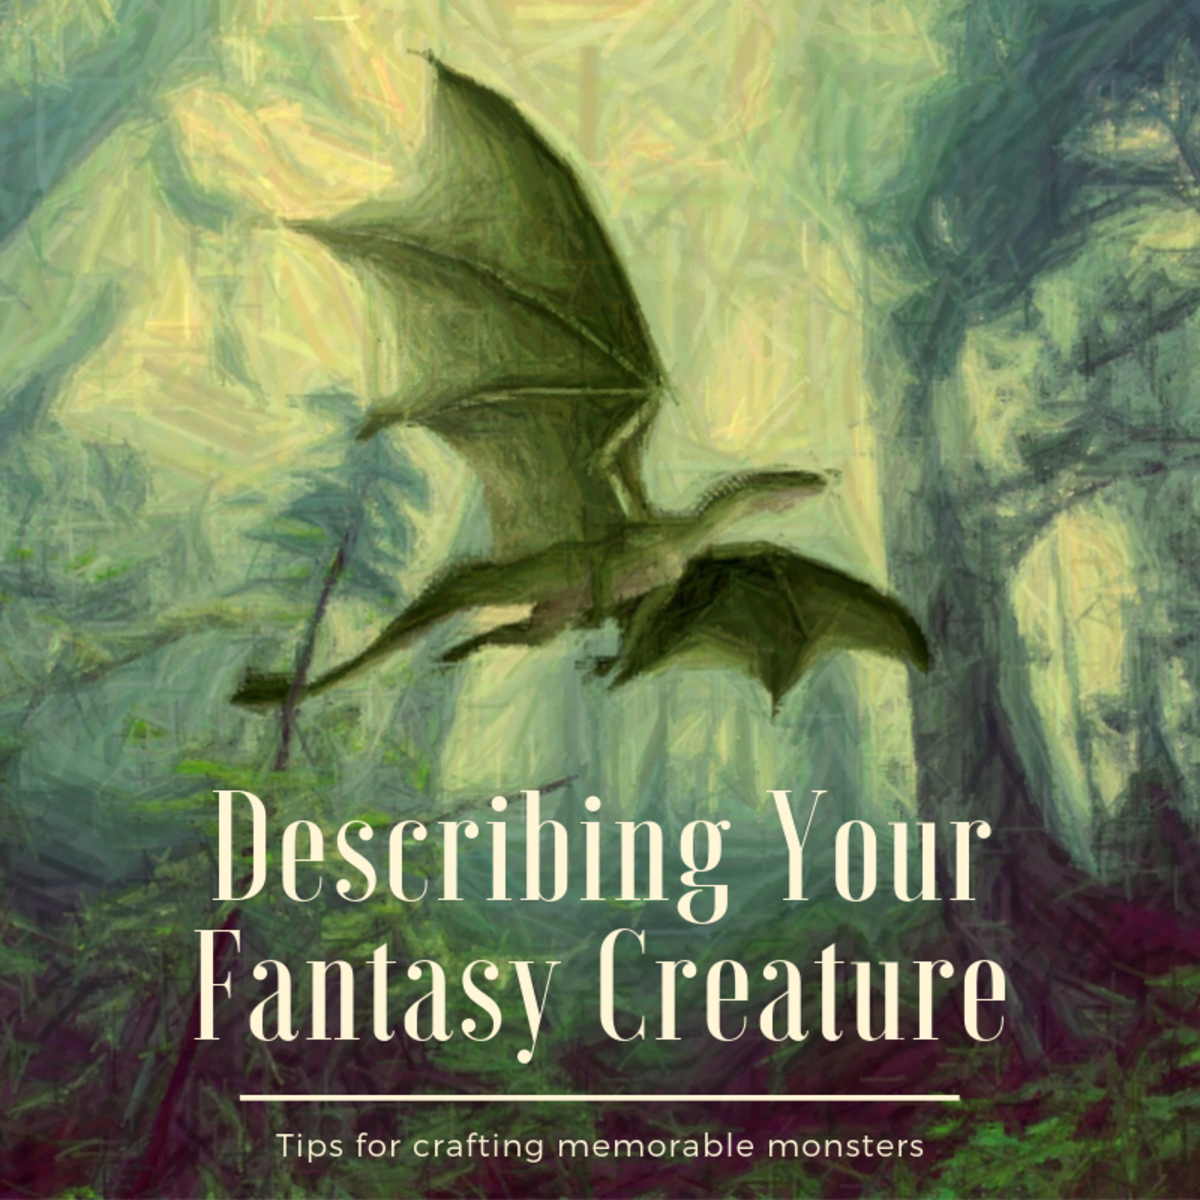 This article will provide you with some guidance on what to think about when crafting your fantasy creature and help you describe its unique characteristics.